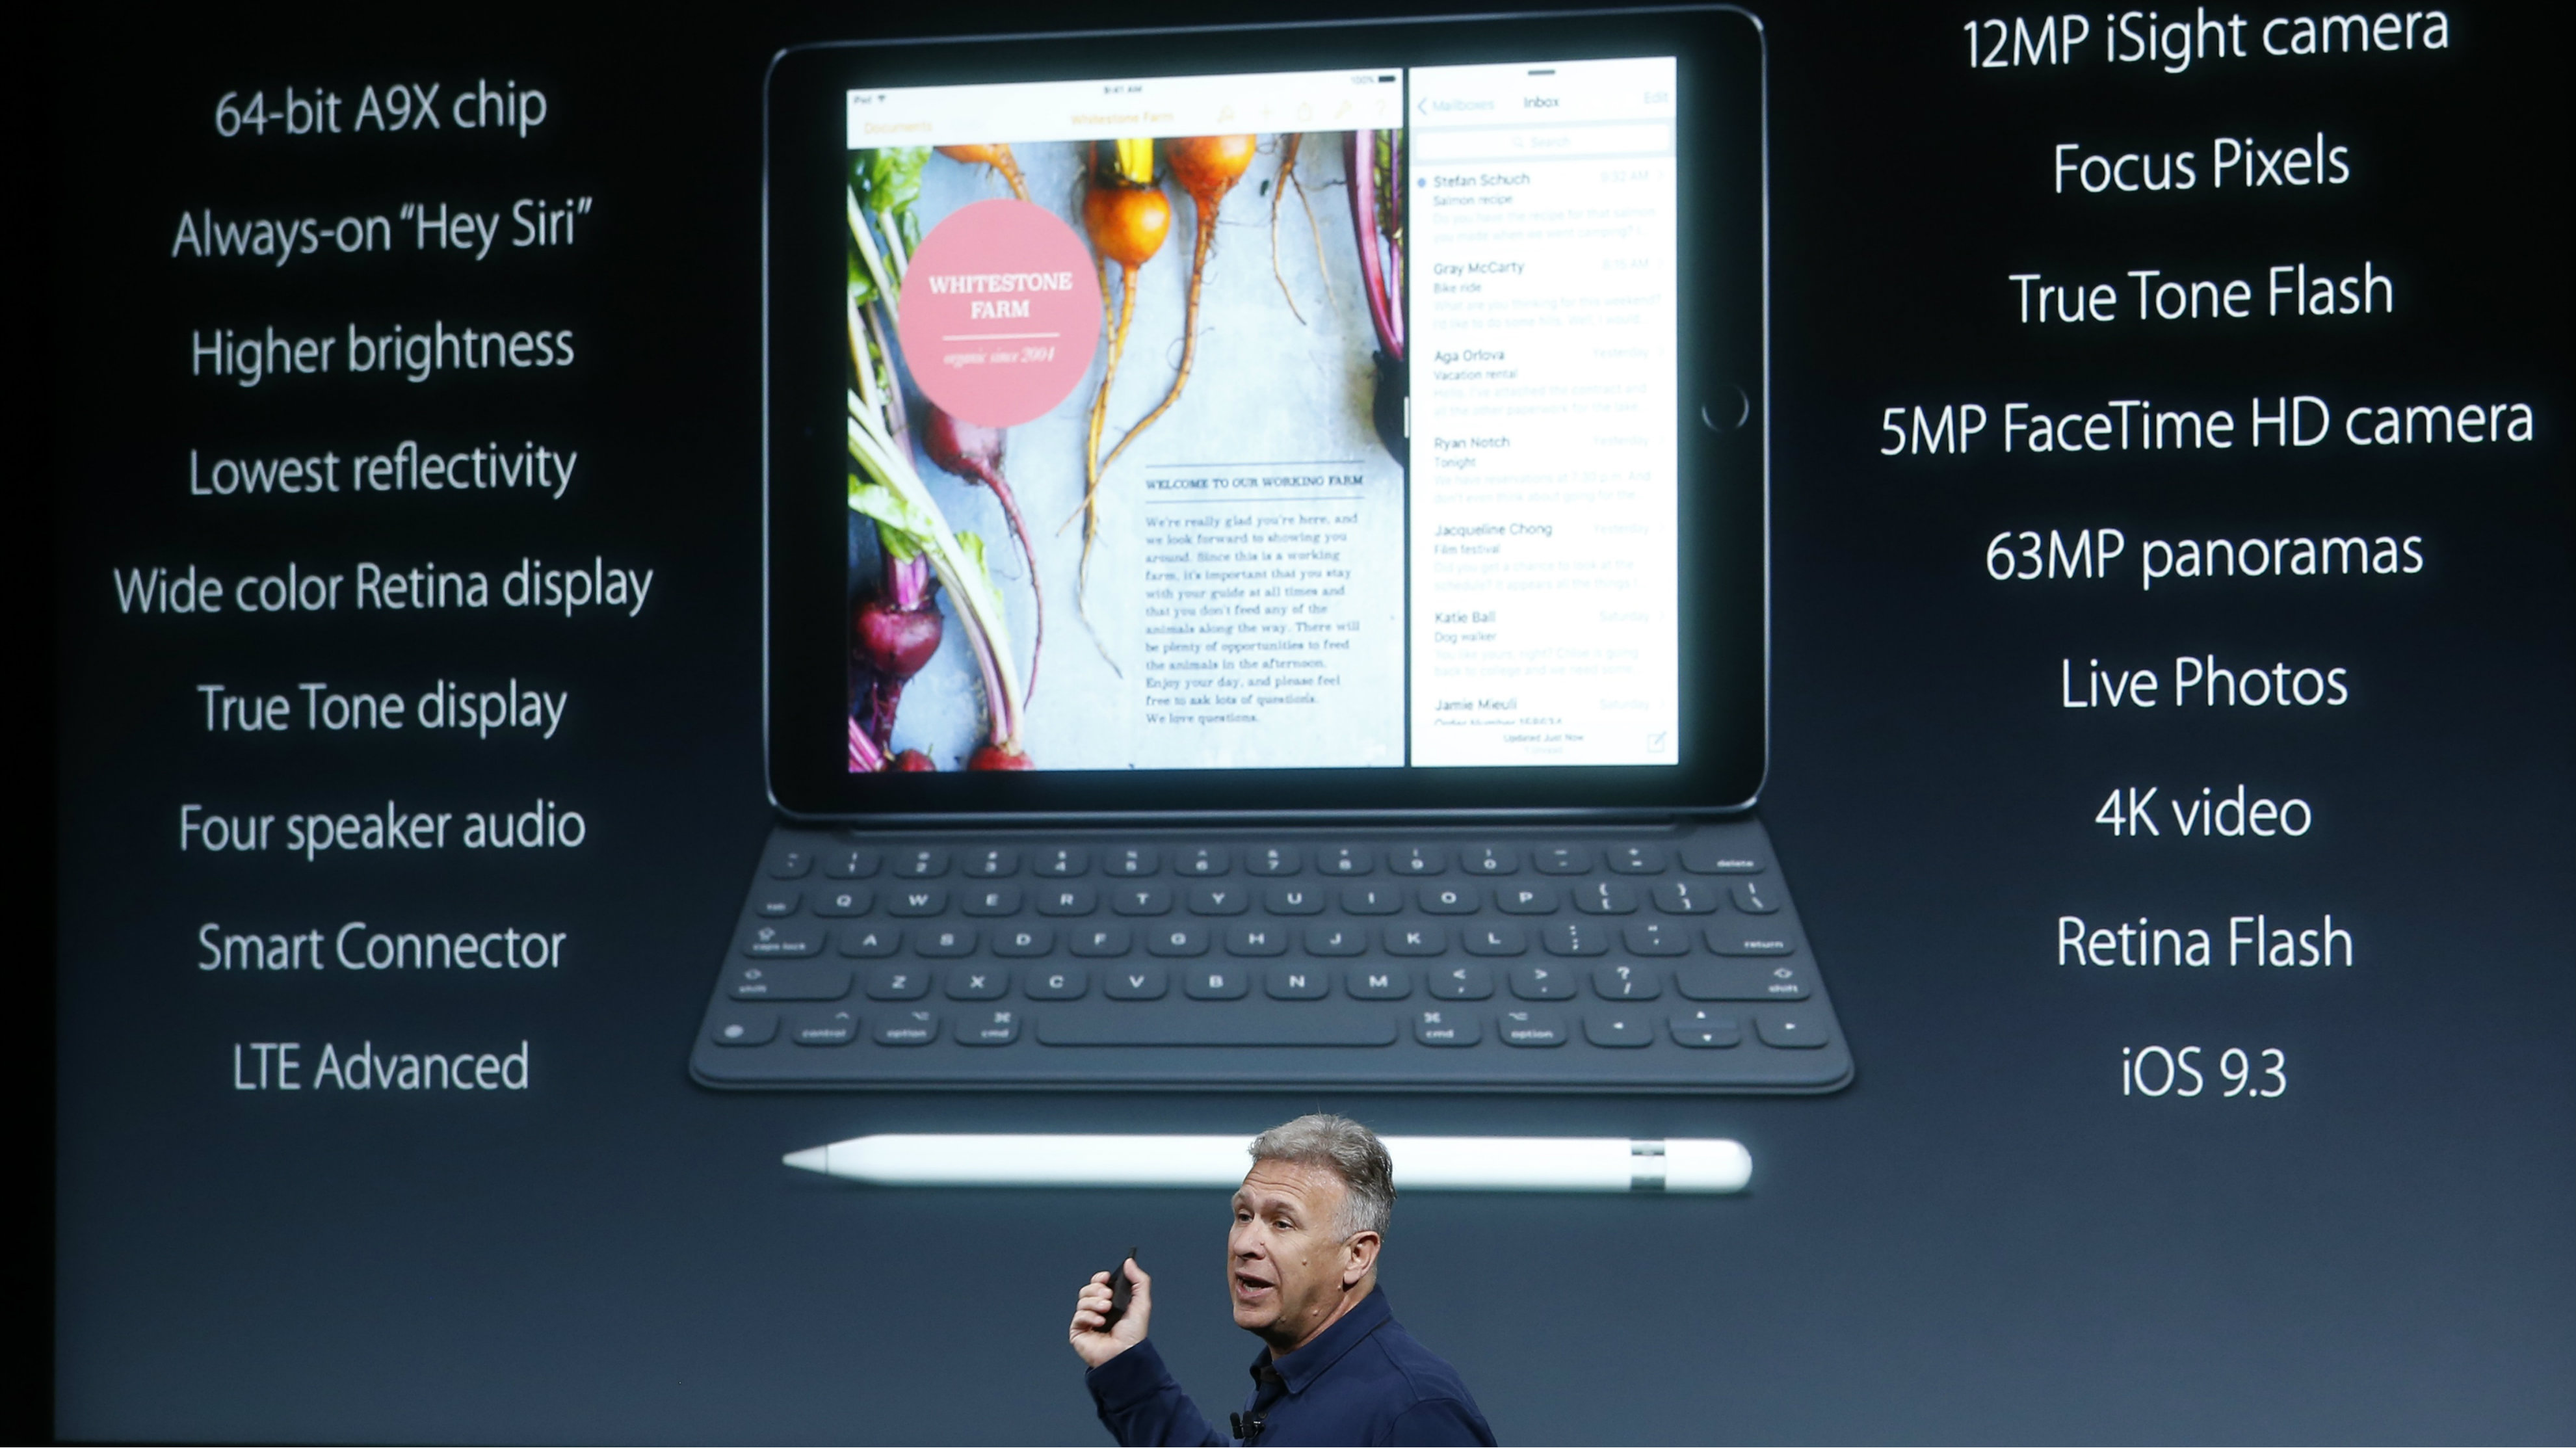 Phil Schiller, senior VP of worldwide marketing for Apple, introduces the iPad Pro with 9.7-inch display during an event at the Apple headquarters in Cupertino, California March 21, 2016. REUTERS/Stephen Lam